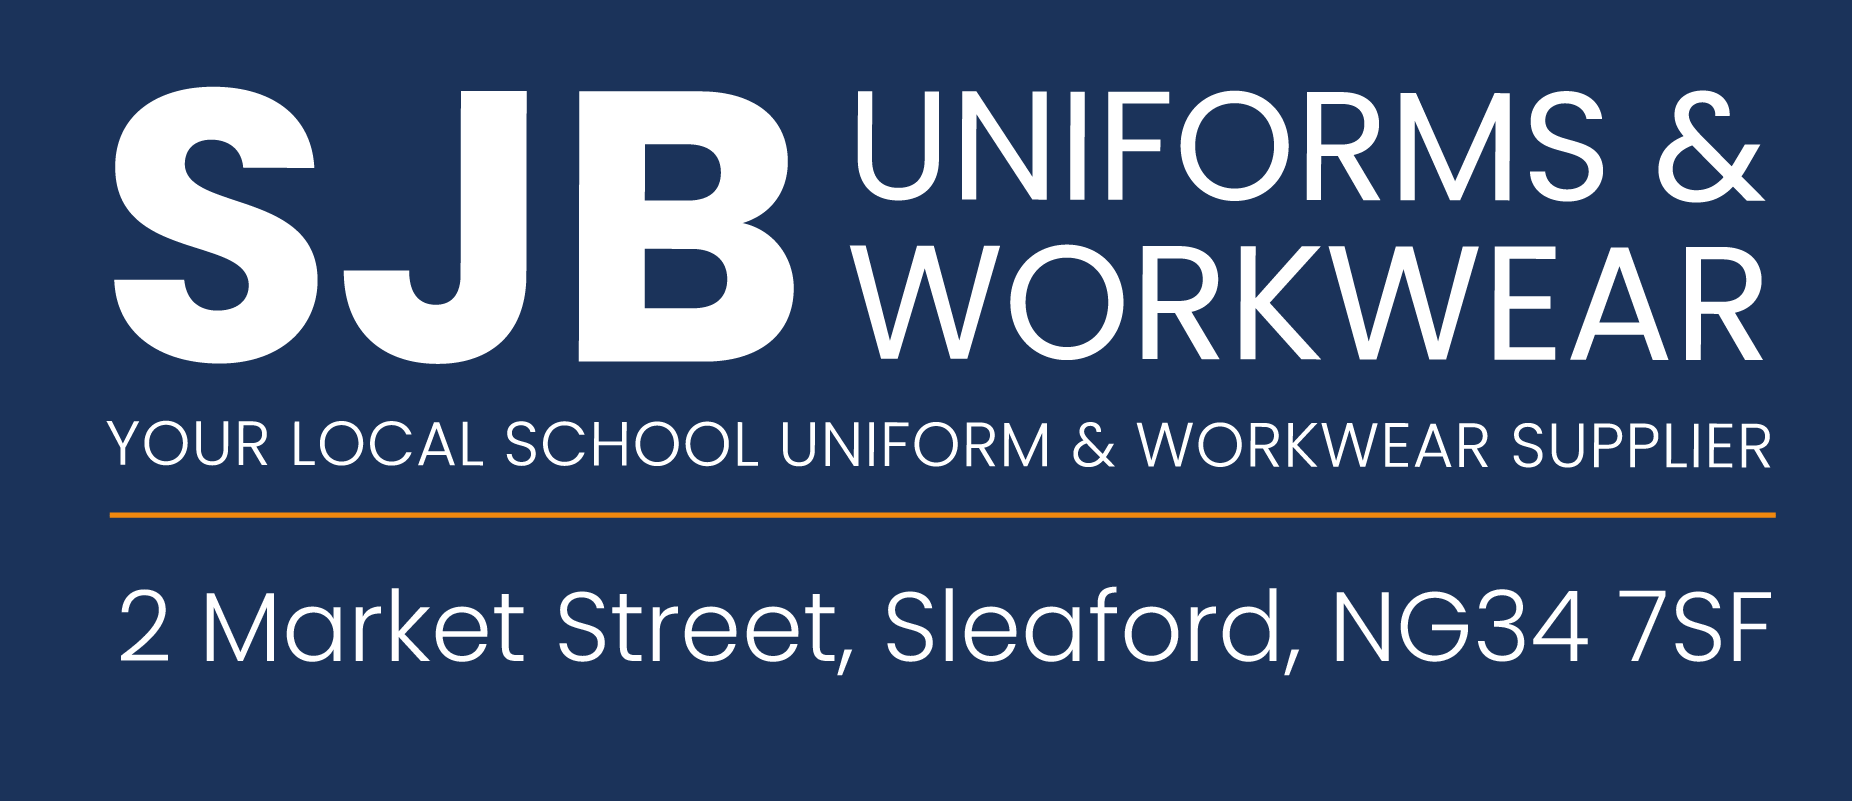 SJB Uniforms & Workwear